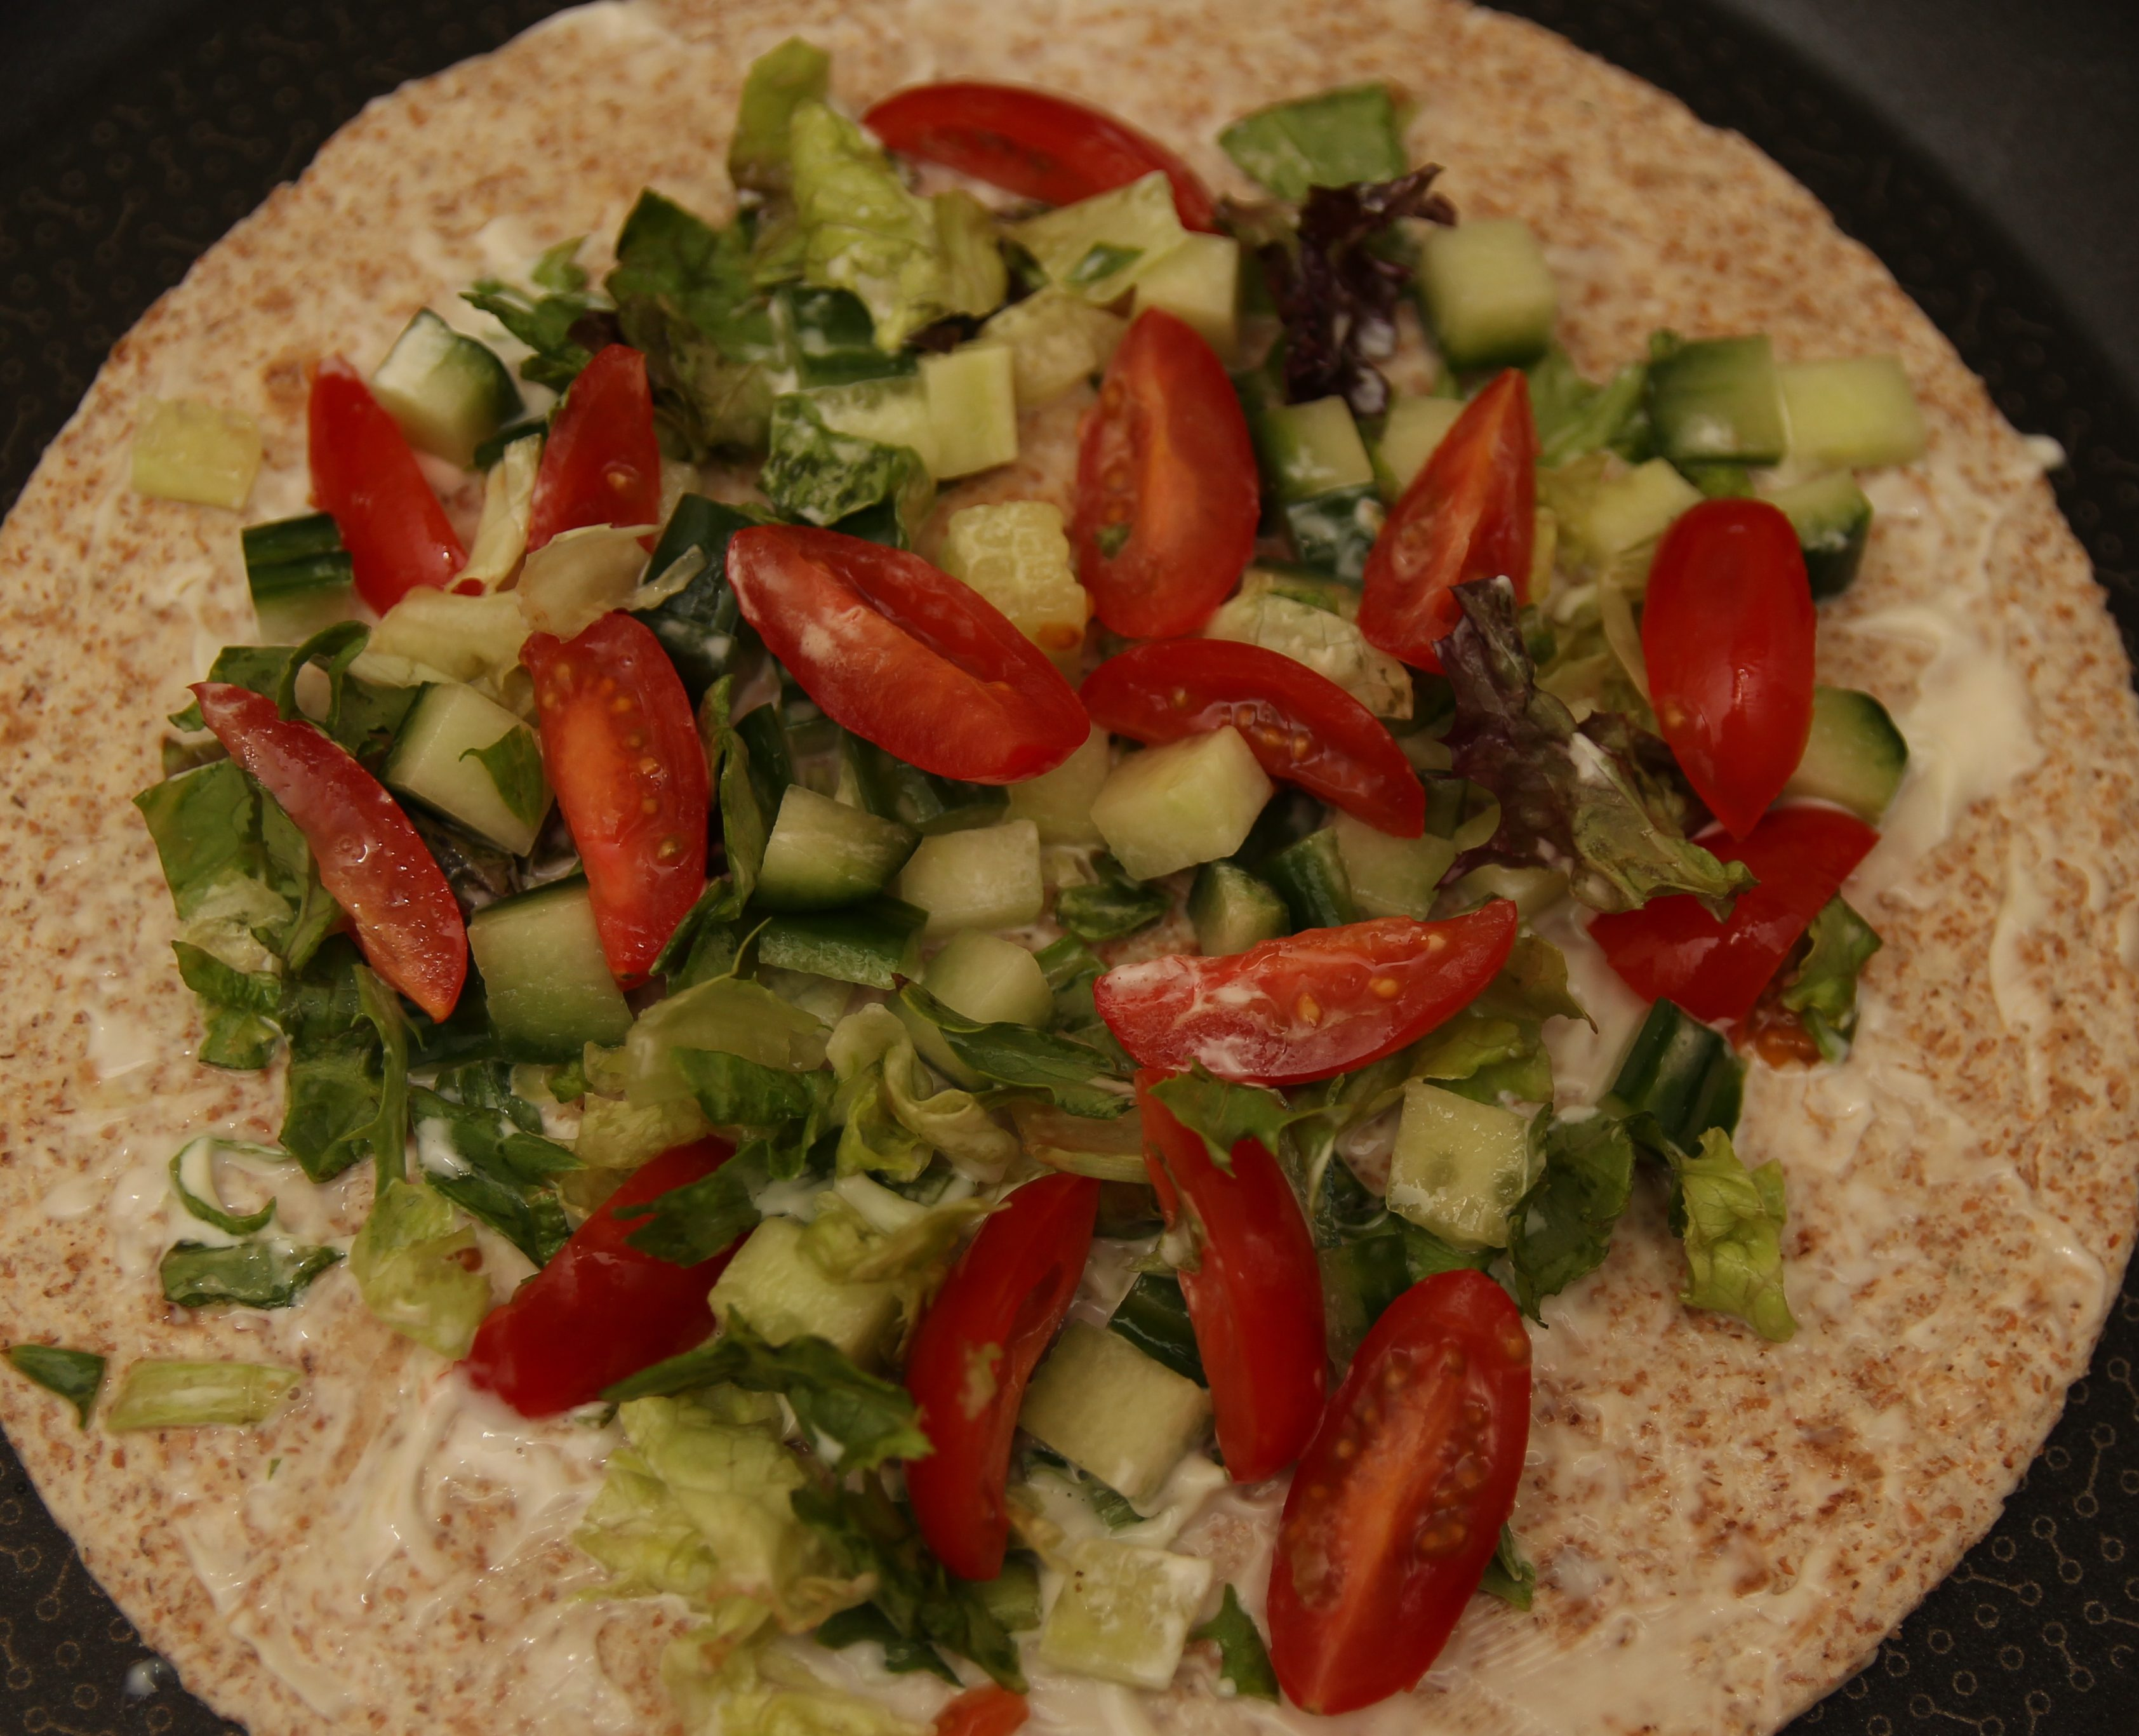 Salad Healthy recipes HealthJoy Avenue